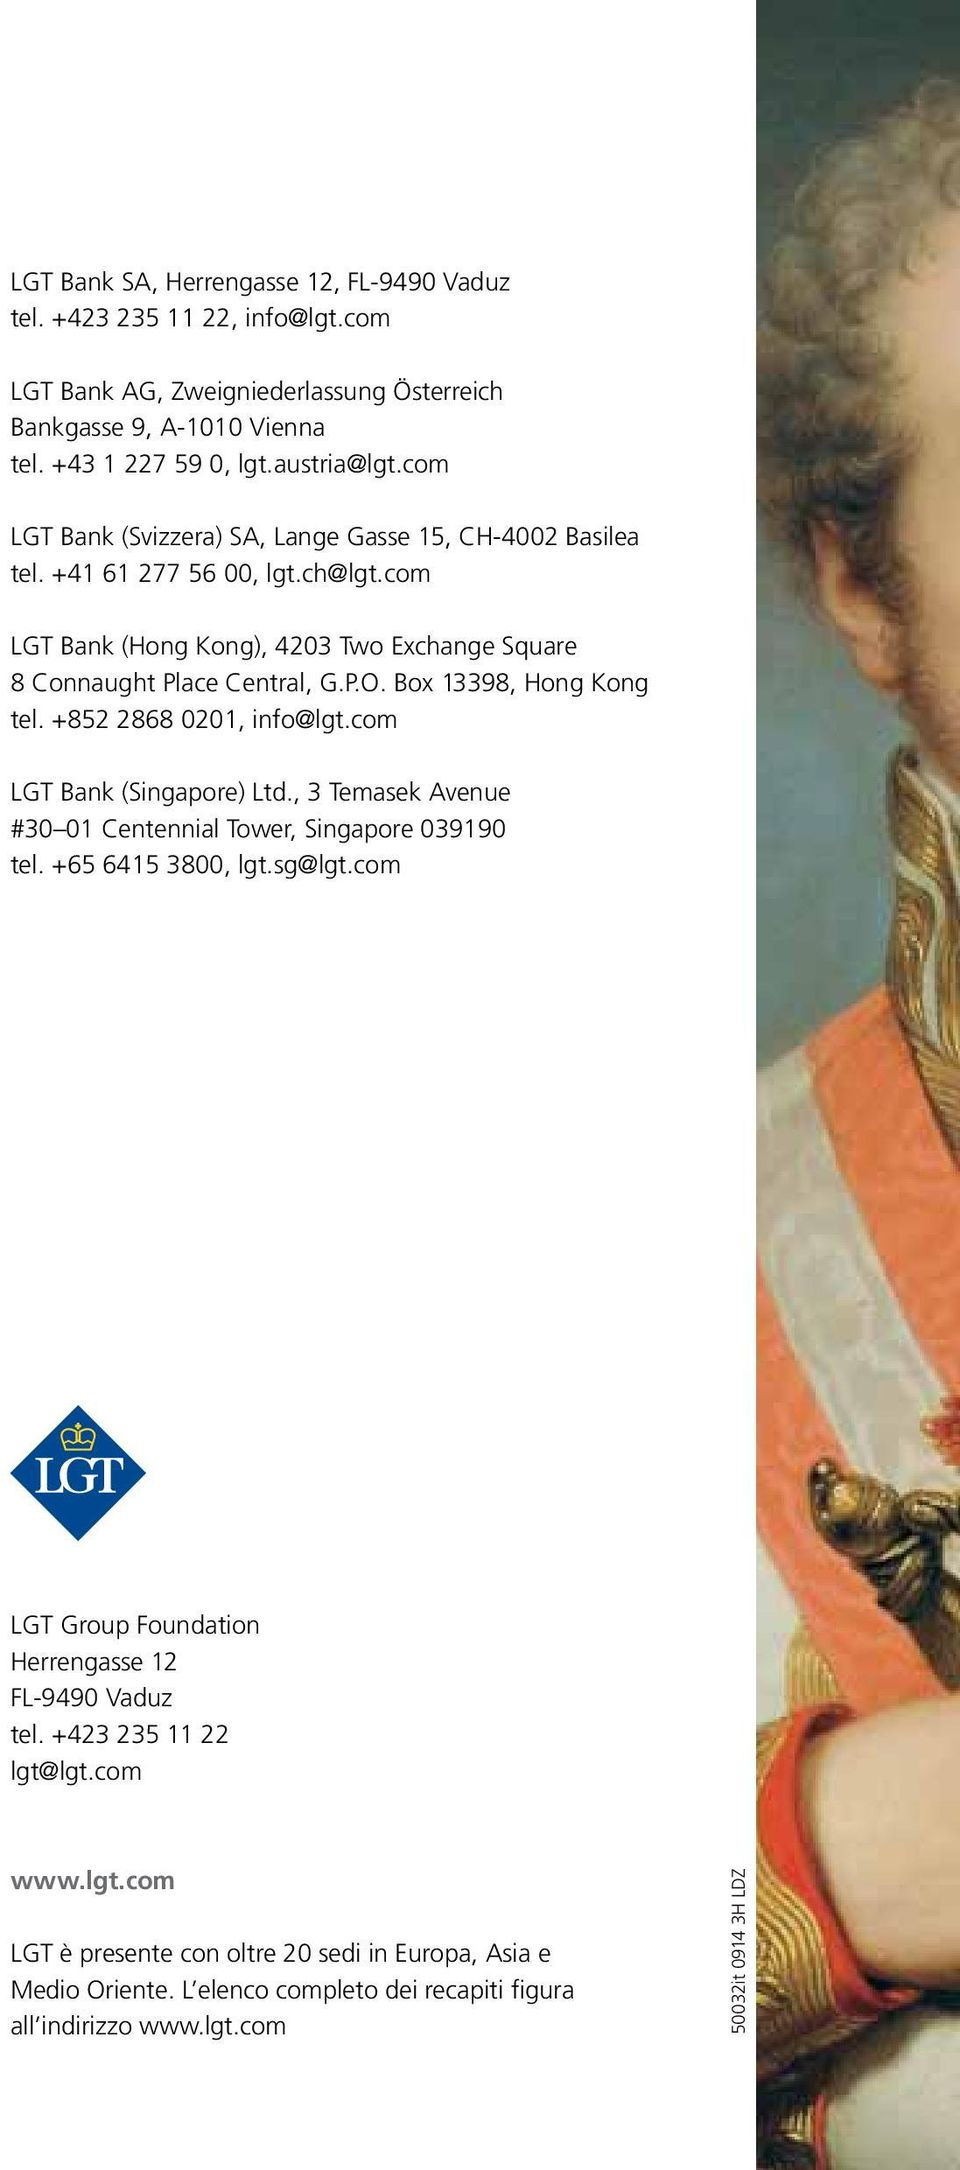 Box 13398, Hong Kong tel. +852 2868 0201, info@lgt.com LGT Bank (Singapore) Ltd., 3 Temasek Avenue #30 01 Centennial Tower, Singapore 039190 tel. +65 6415 3800, lgt.sg@lgt.